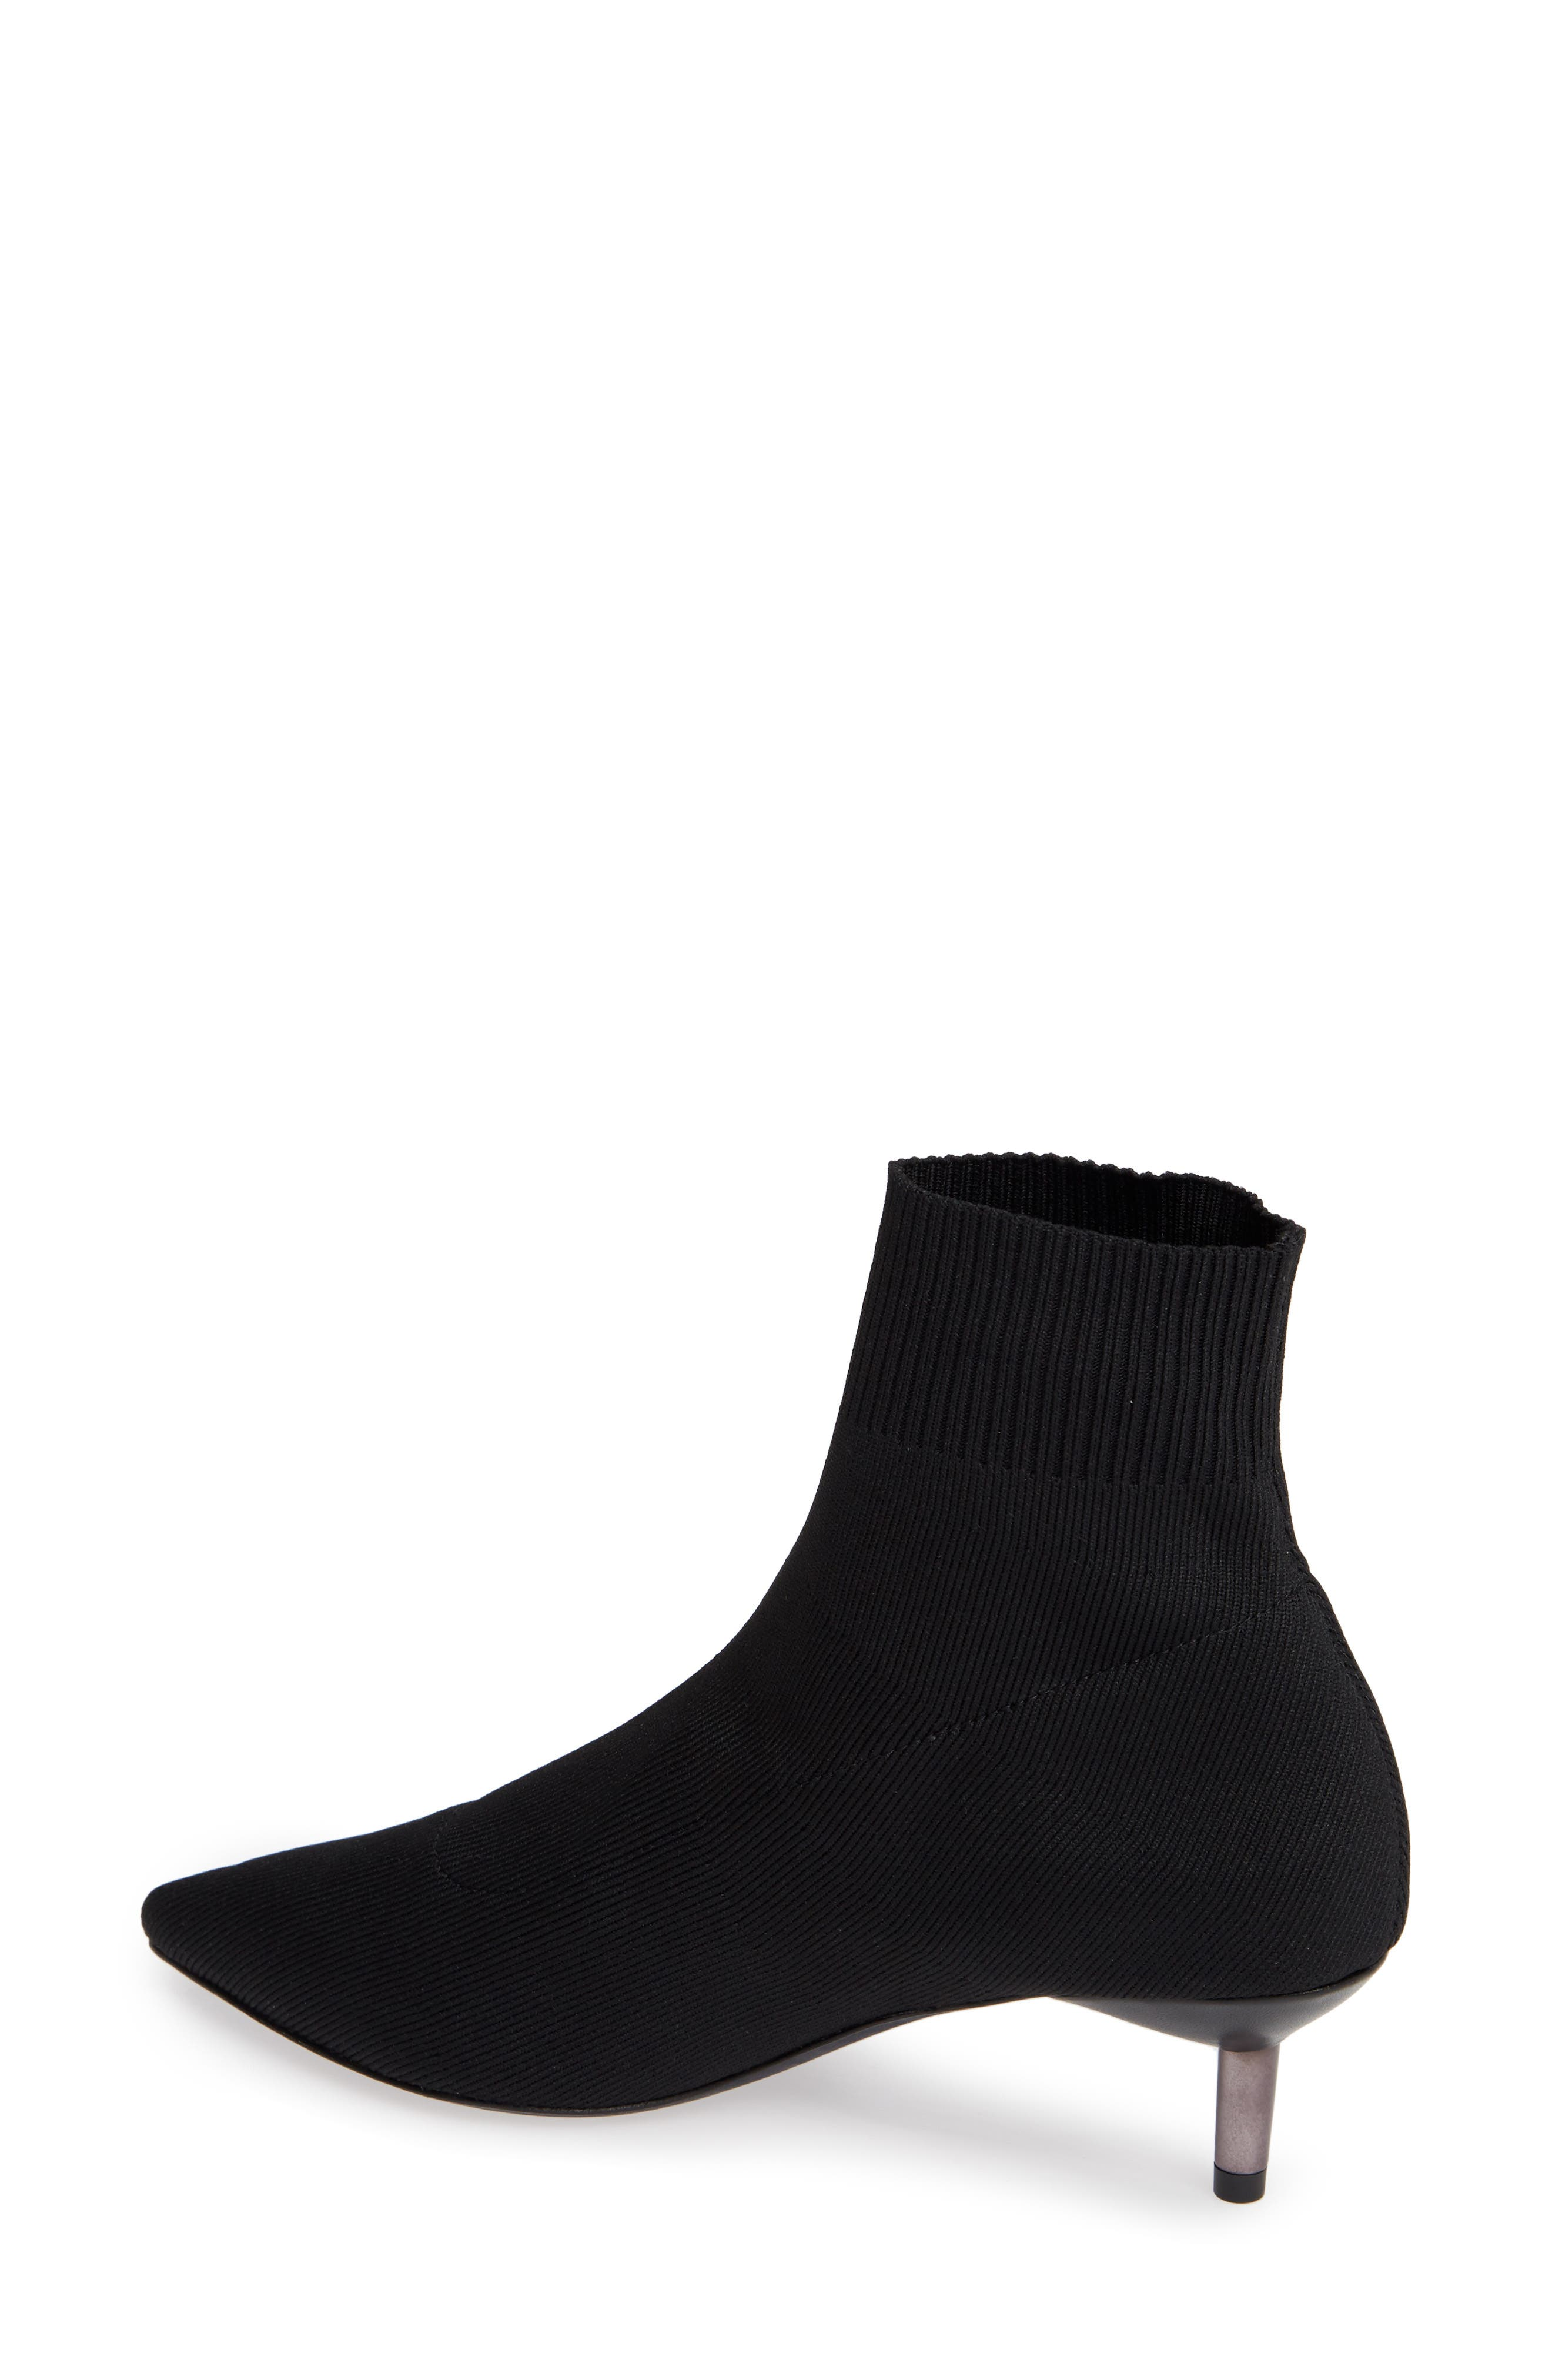 Betti Stretch Bootie,                             Alternate thumbnail 2, color,                             BLACK KNIT FABRIC